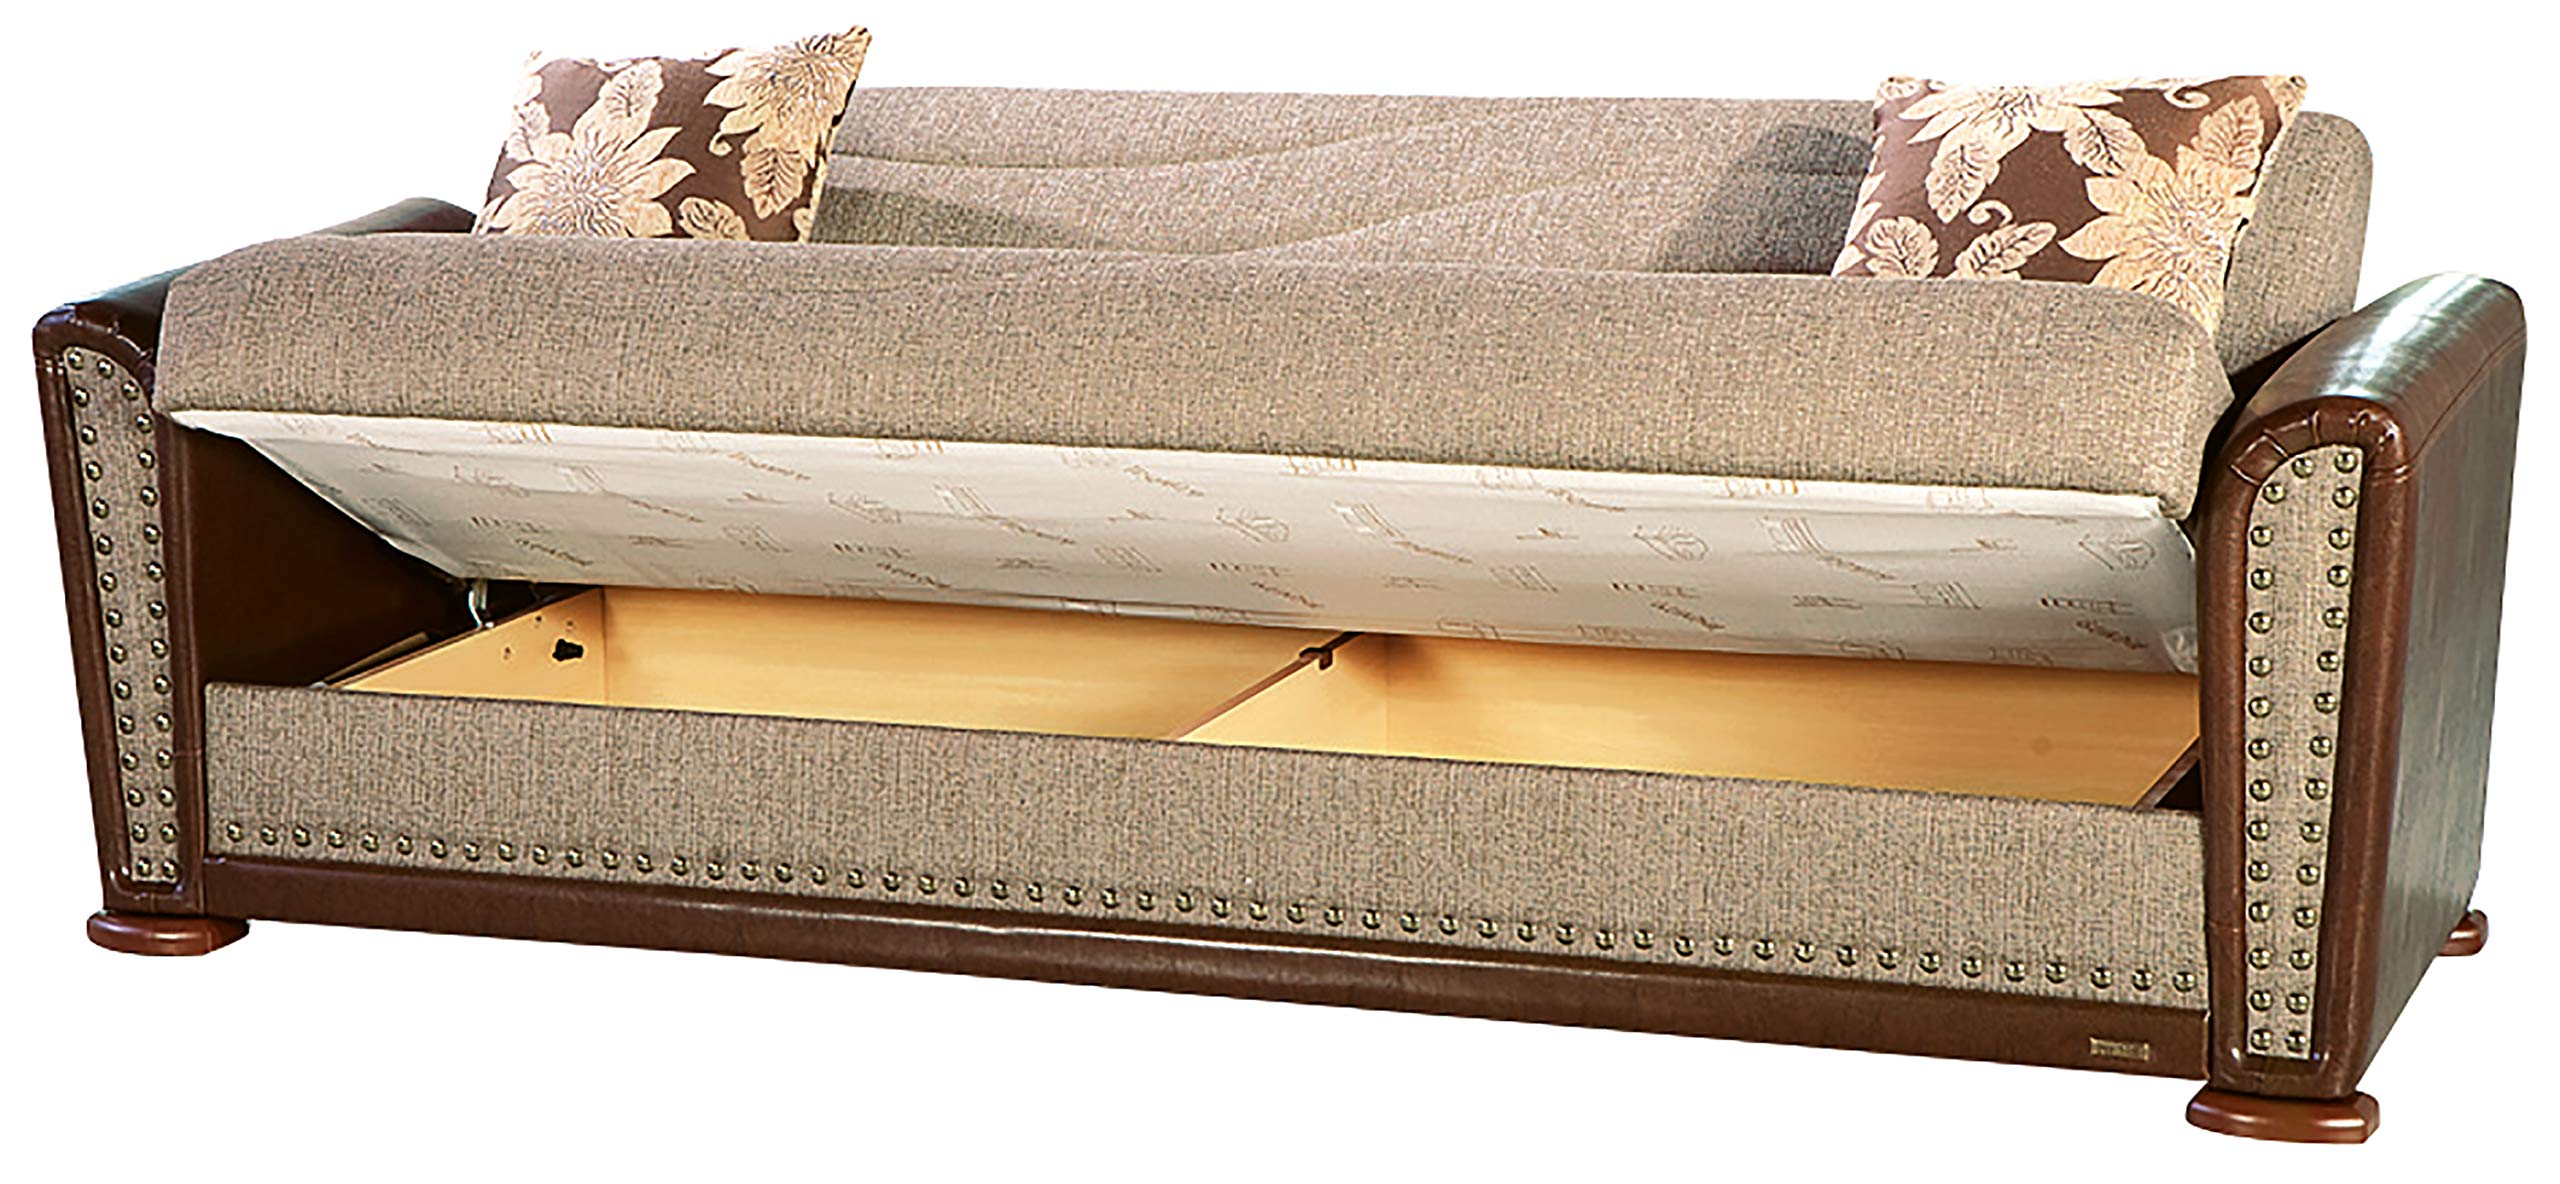 Istikbal Alfa Sofa Bed in Redeyef Brown -  - sofas-couches, living-room-furniture, living-room - 816%2BBMu9ilL -